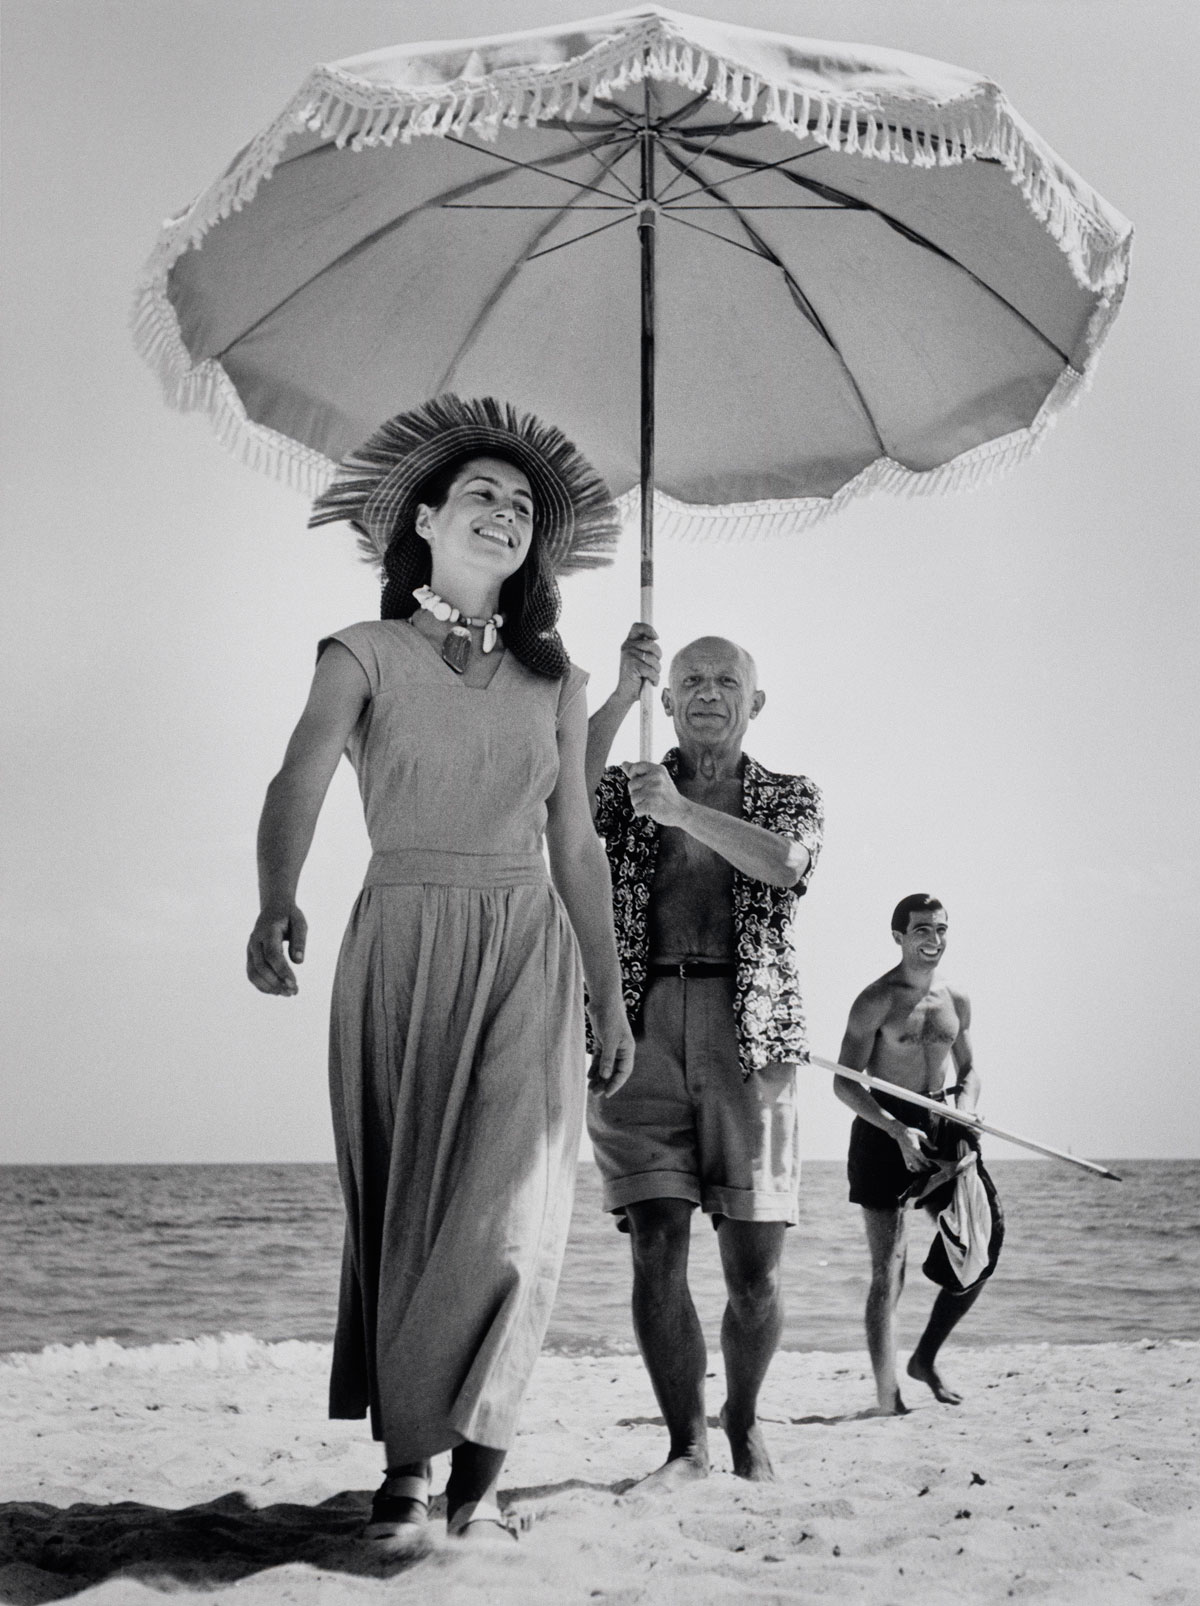 Pablo Picasso with his nephew Javier Vilato and Françoise Gilot on the beach. Golfe-Juan, France. August, 1948 © Robert Capa © International Center of Photography / Magnum Photos